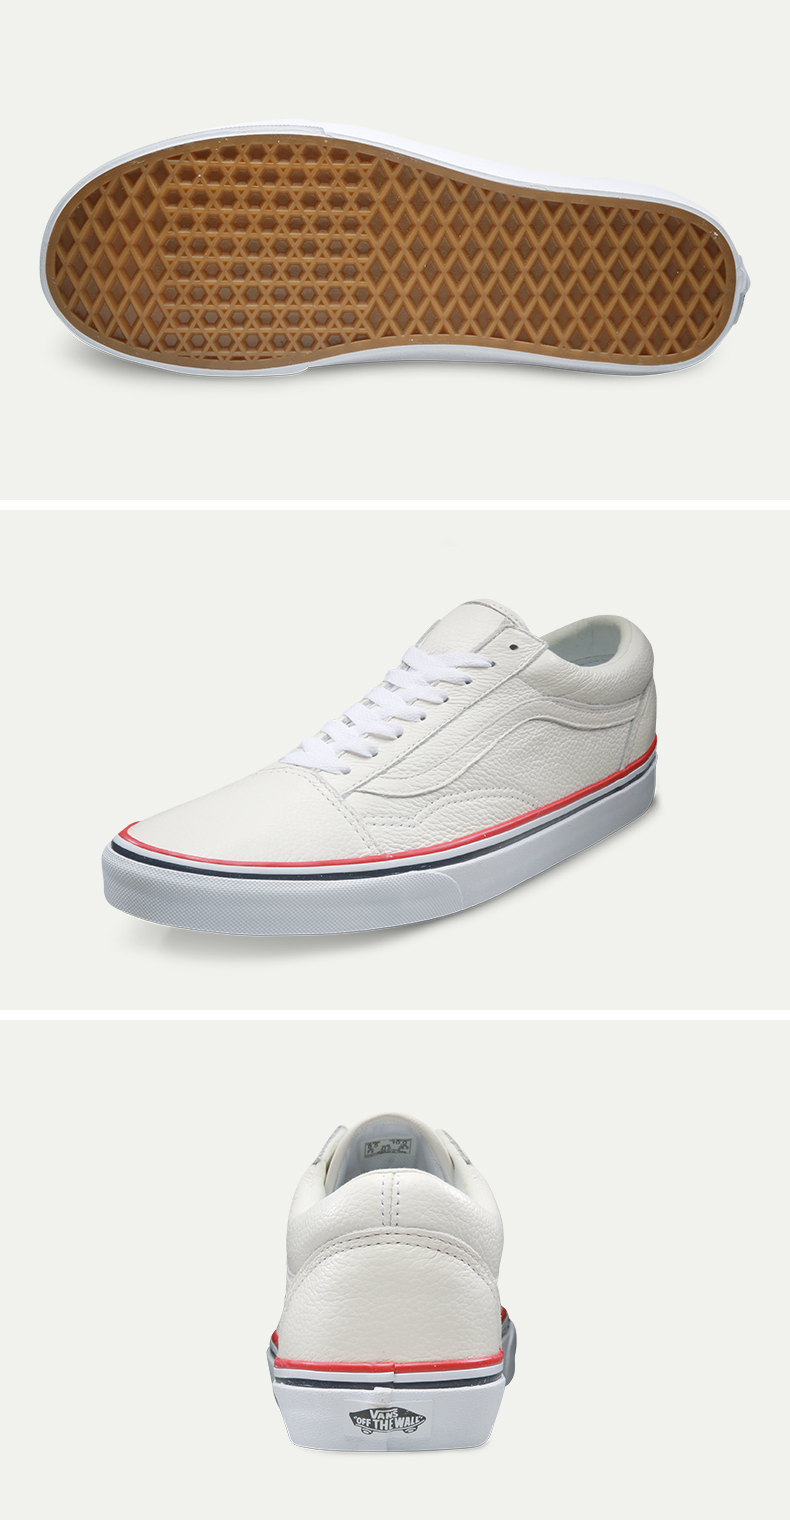 Intersport Original Vans Classic Vans Unisex Skateboarding Shoes Old Skool Sports Shoes Sneakers Classique Shoes Platform